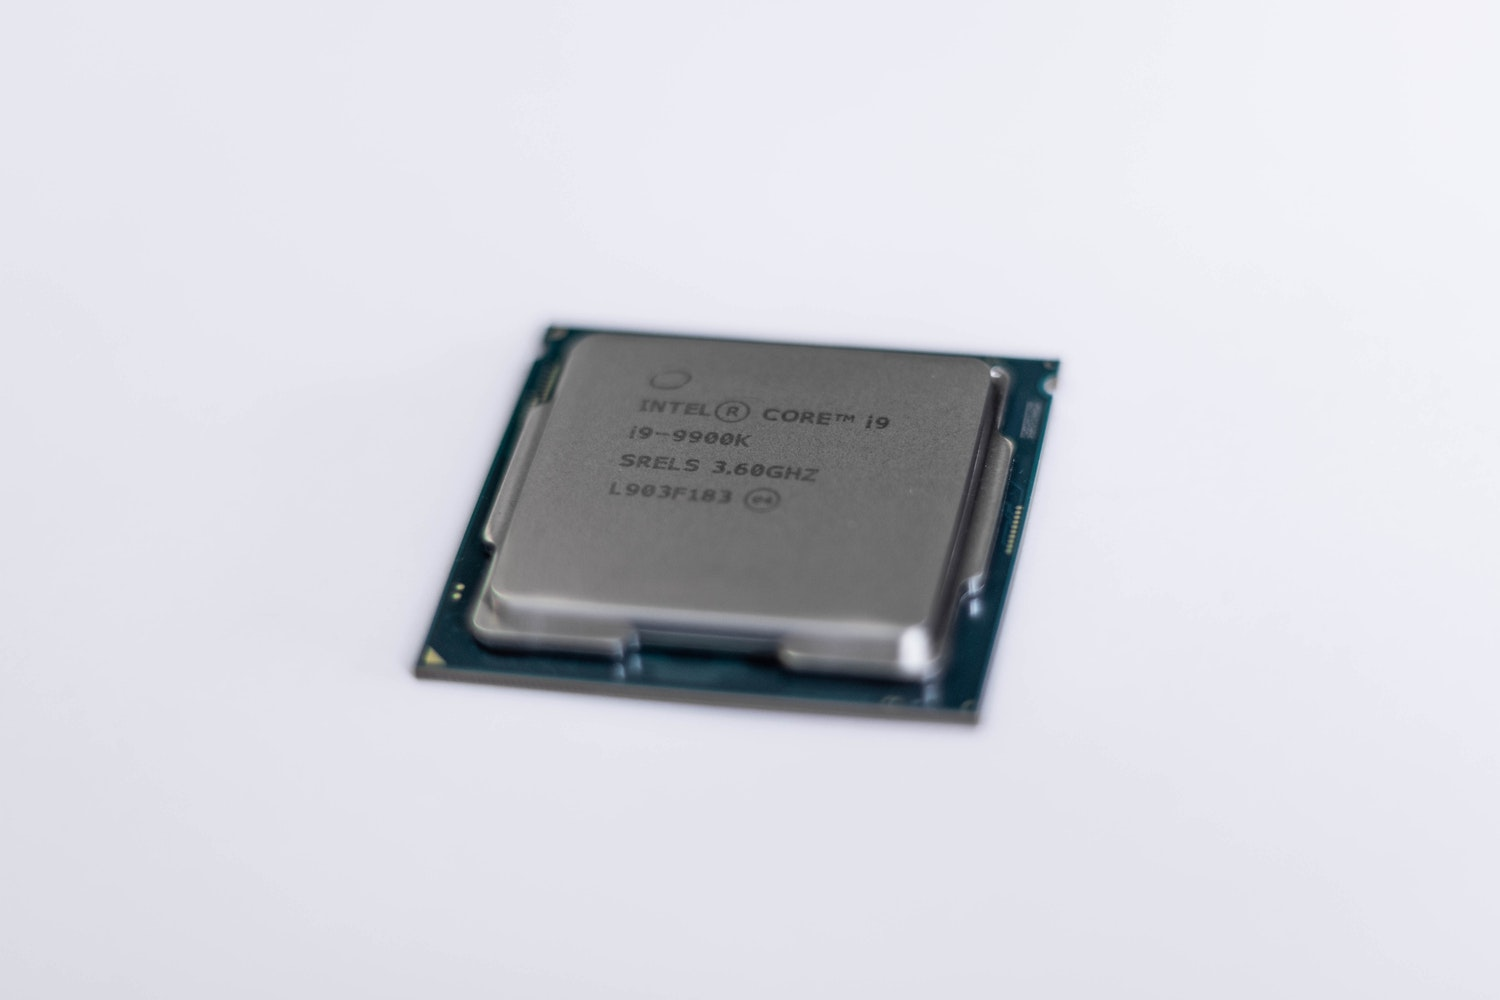 Une carte graphique Intel Core i9 9900k